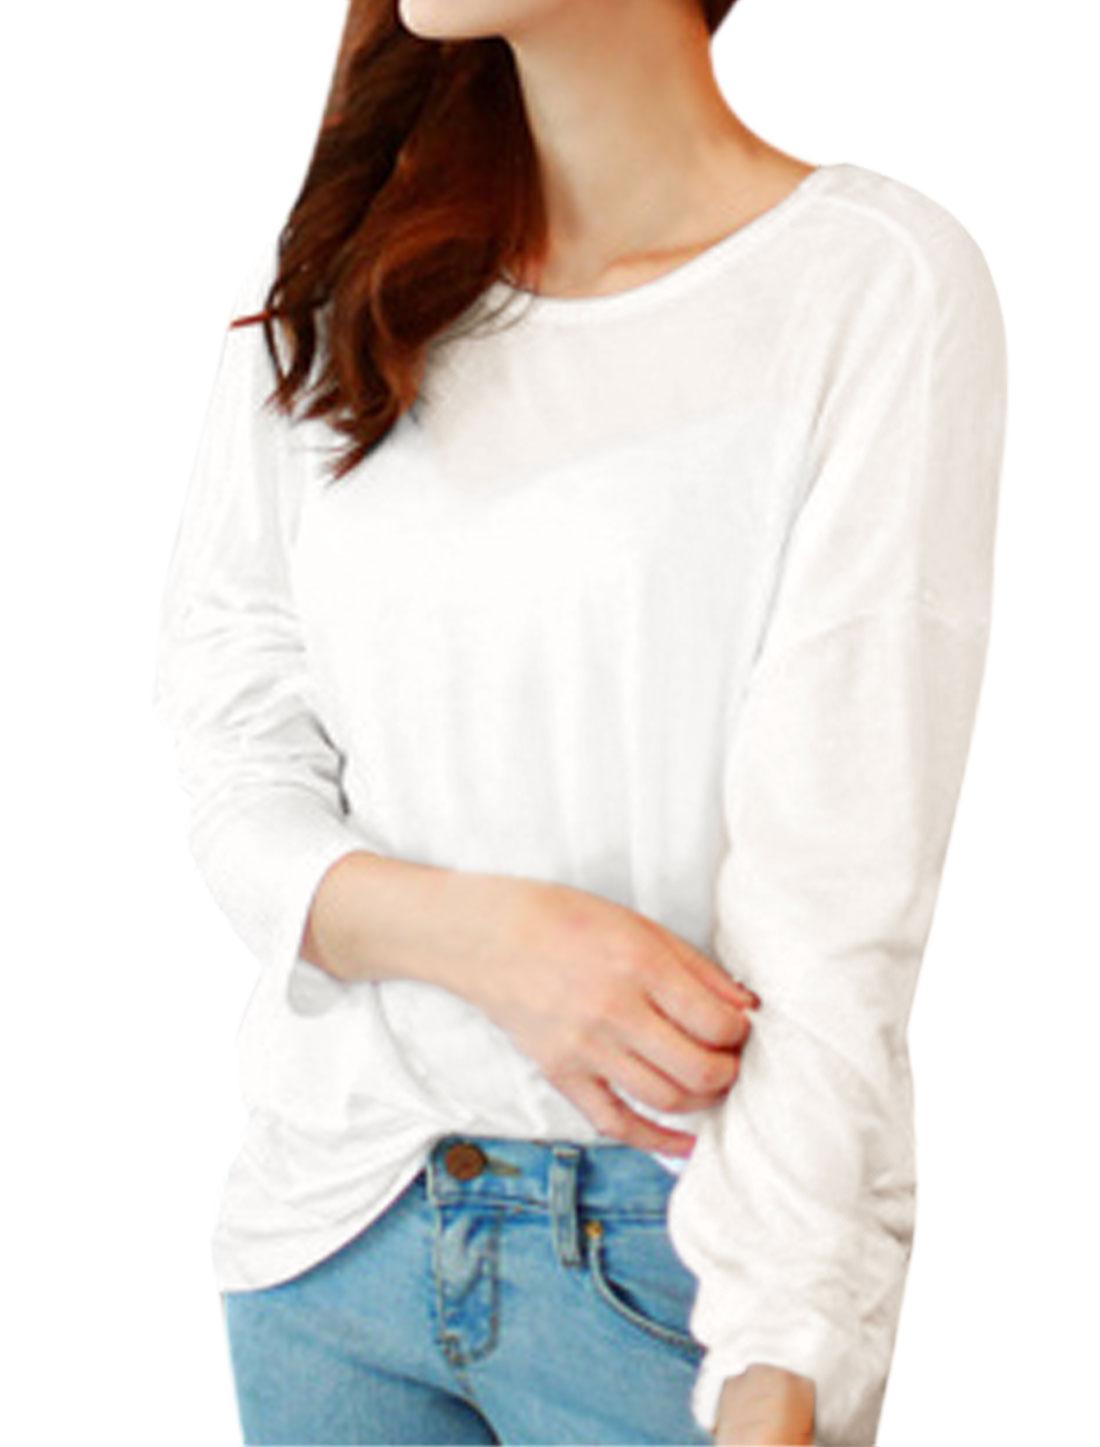 Women Scoop Neck Cowls Open Back Batwing Tee Shirt White S